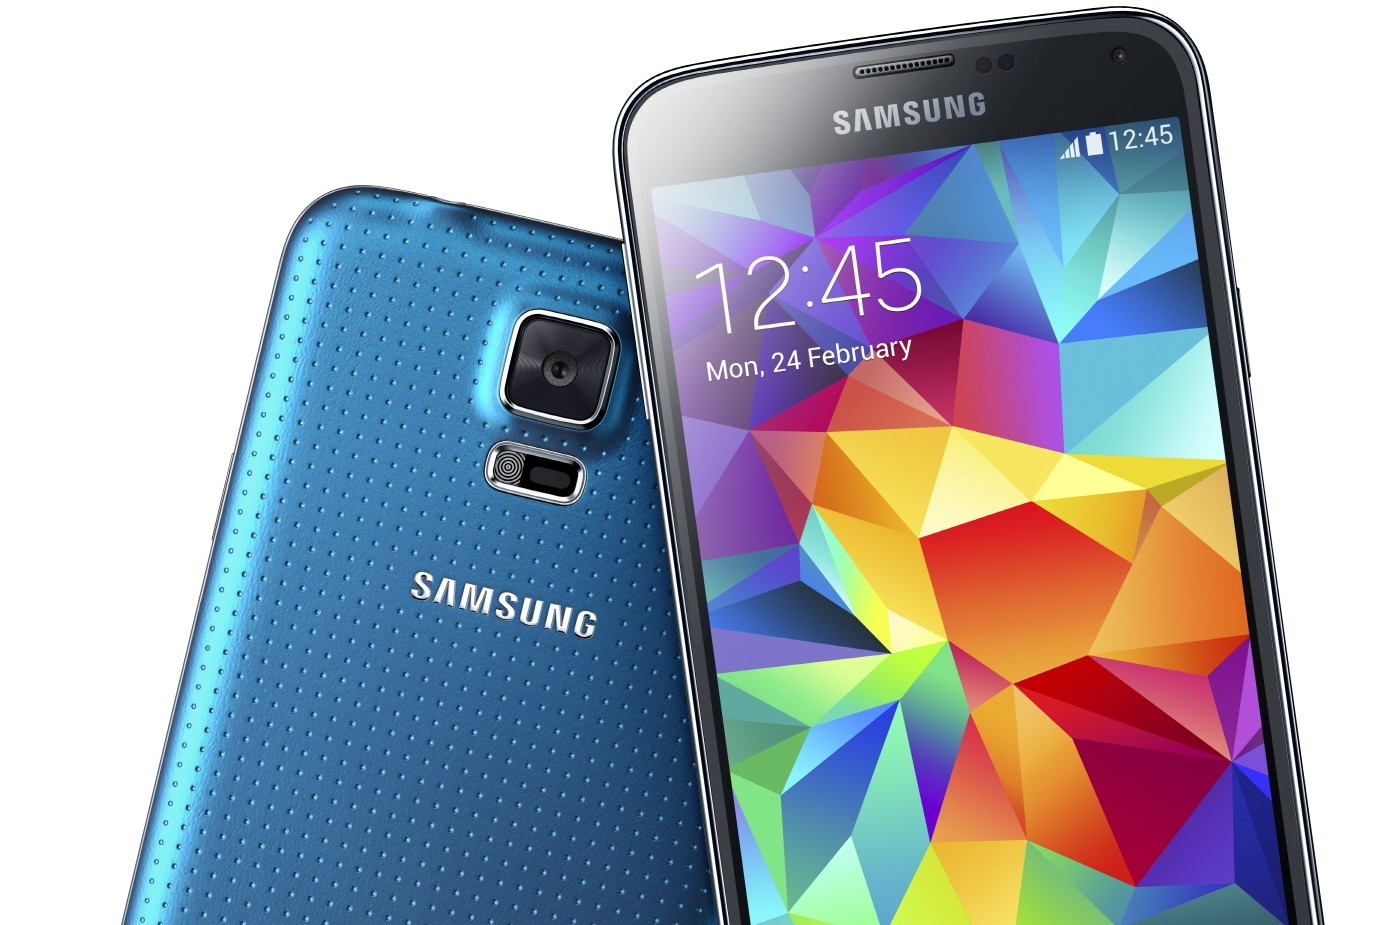 Samsung Galaxy S5 in blue